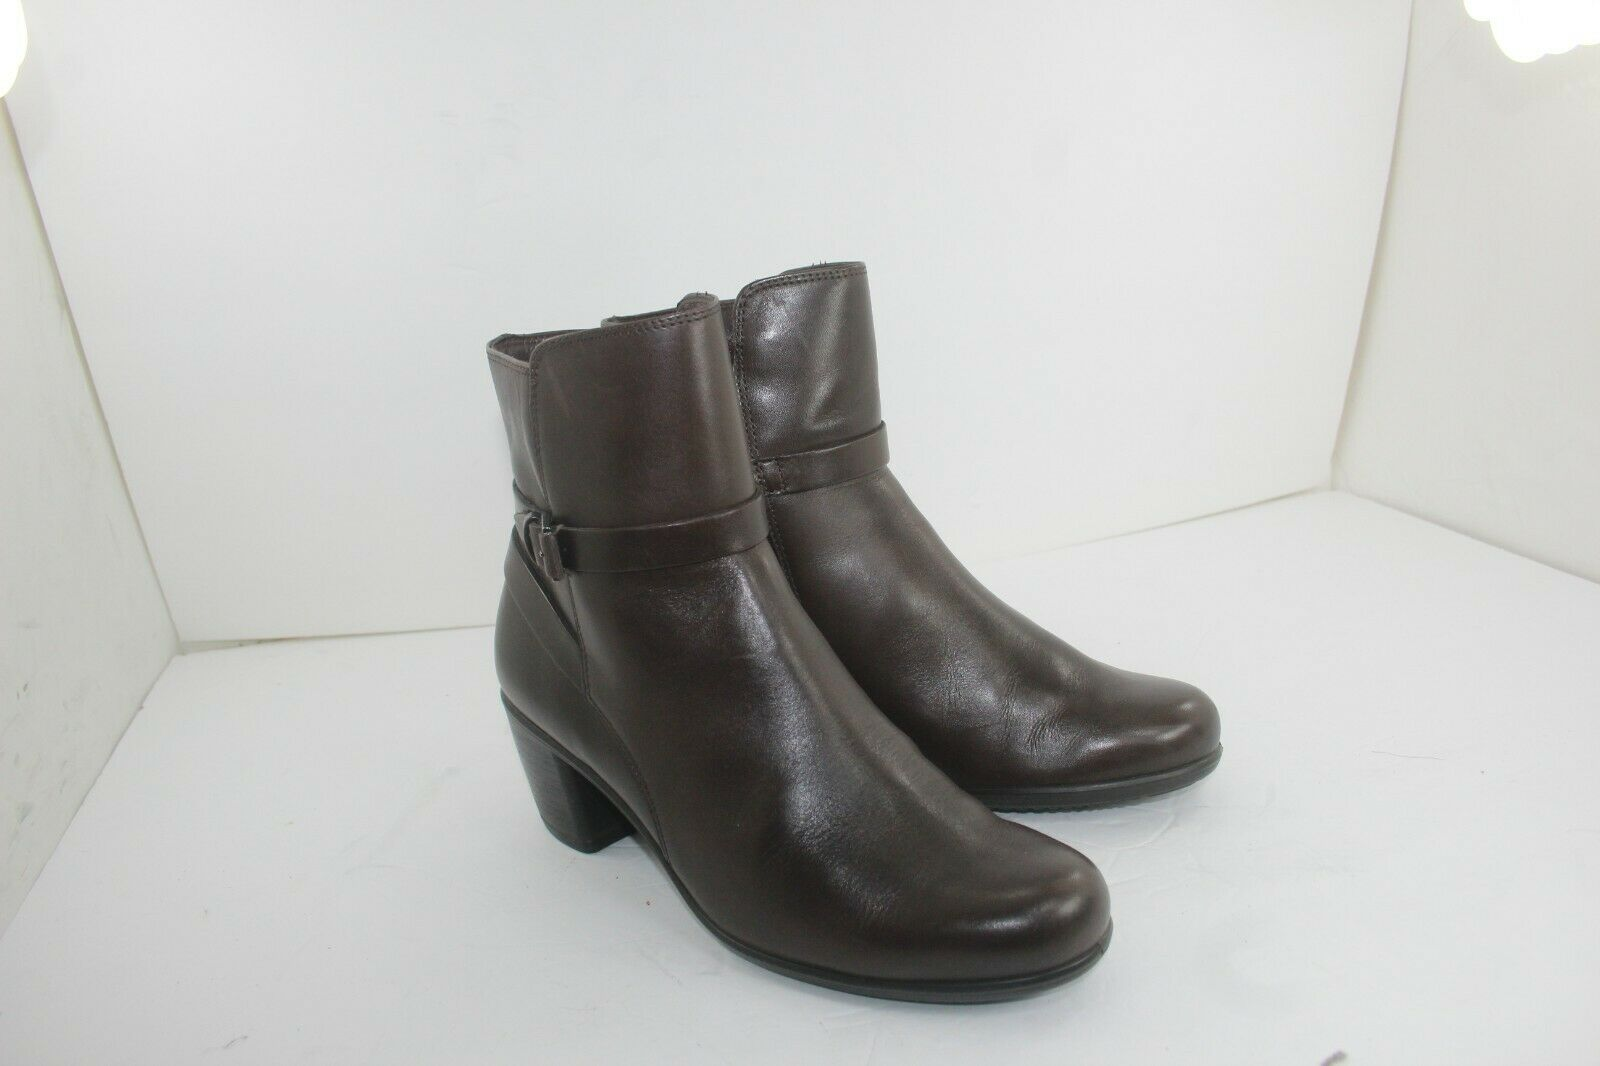 ECCO BOOTIES SIZE 39 US SIZE 9 IN GREAT CONDITION LEATHER